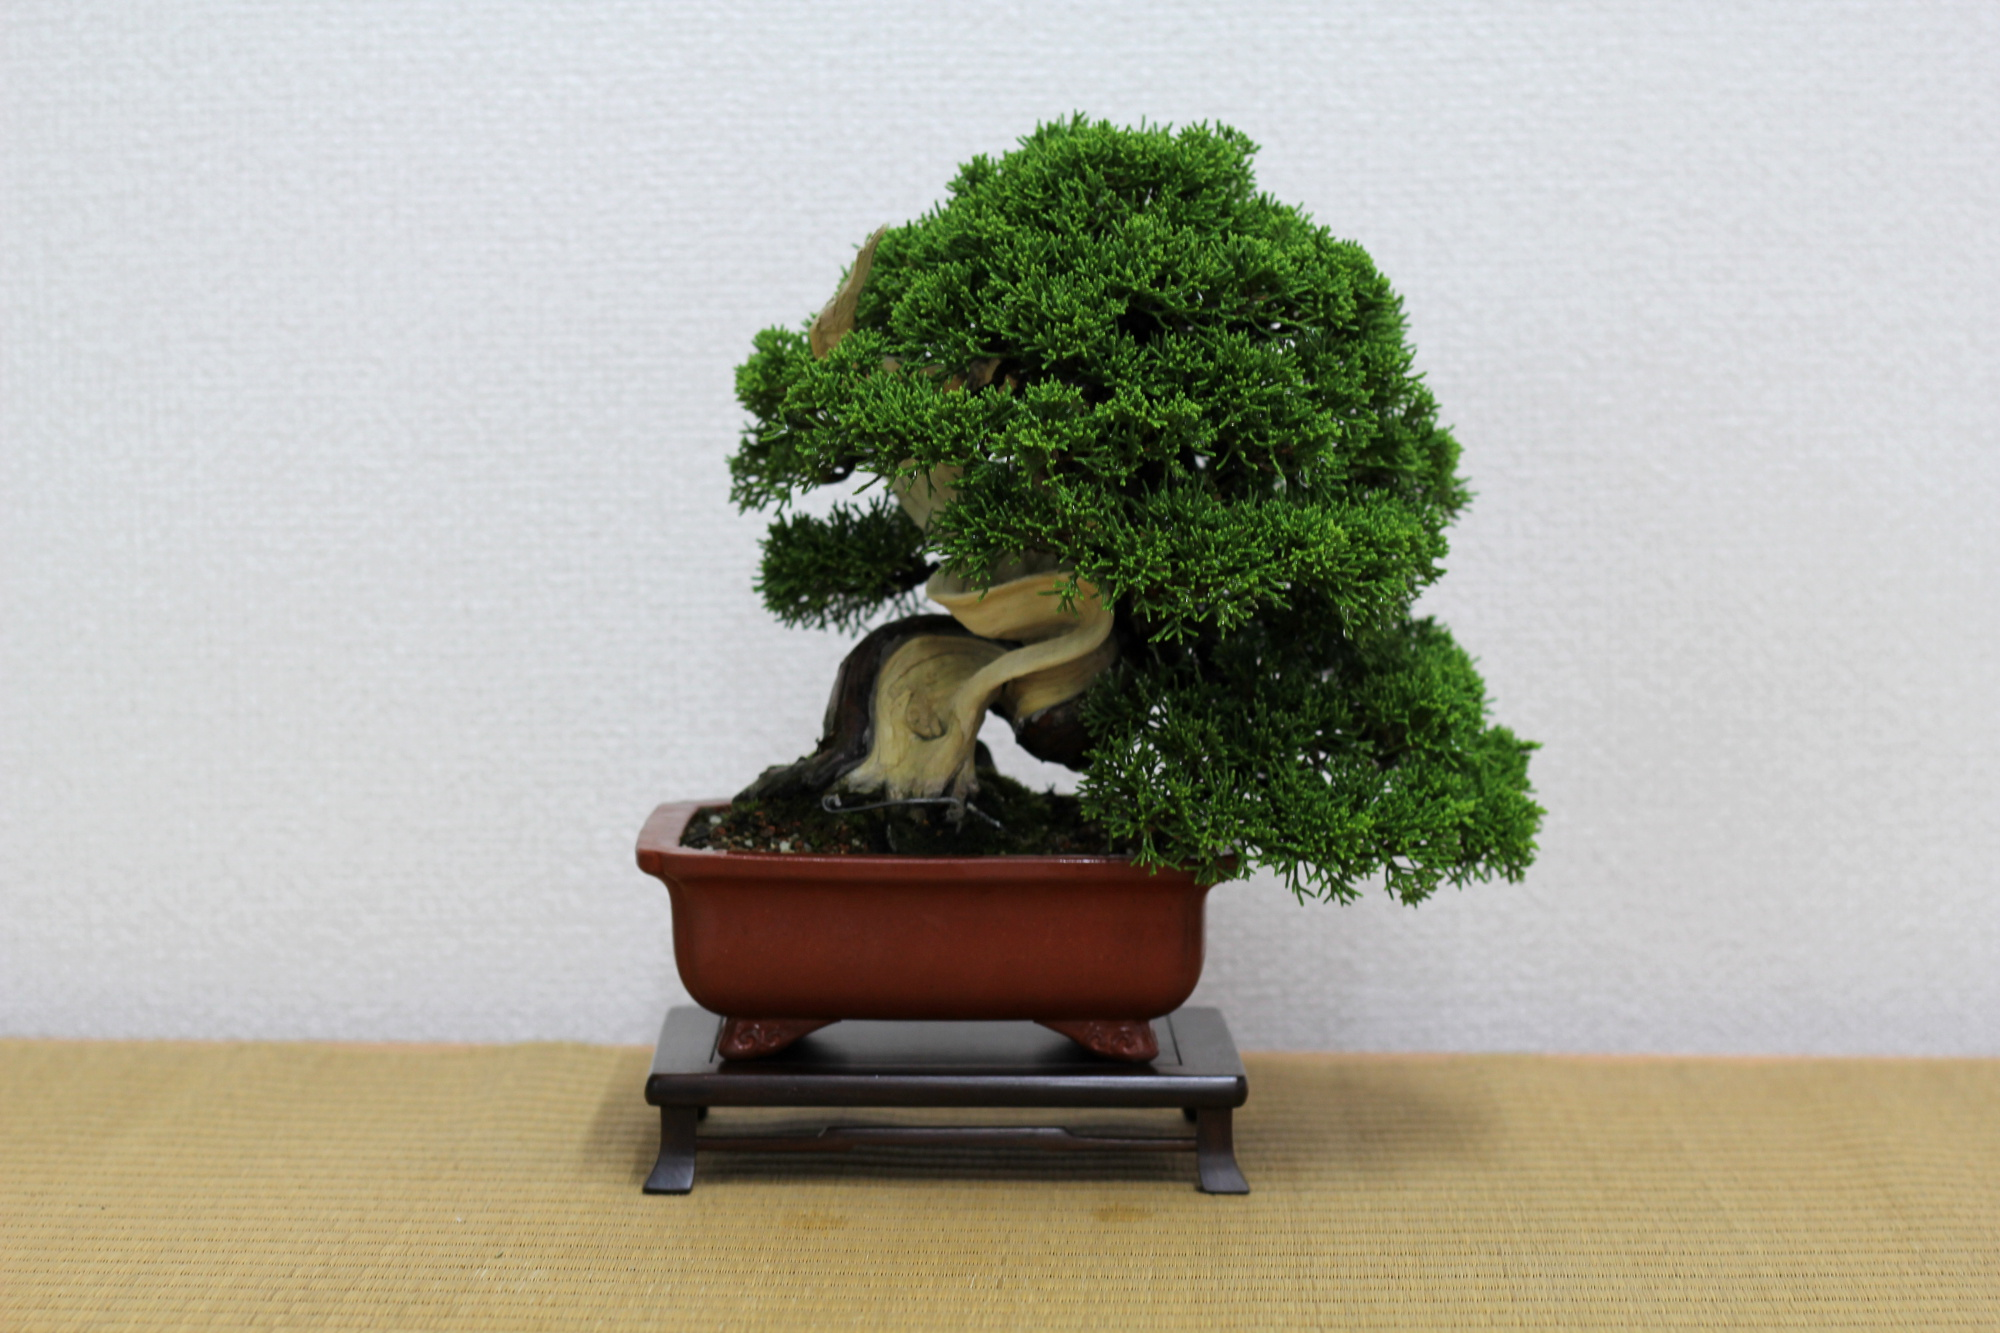 forum medias et autres sites bonsai blog actubonsa